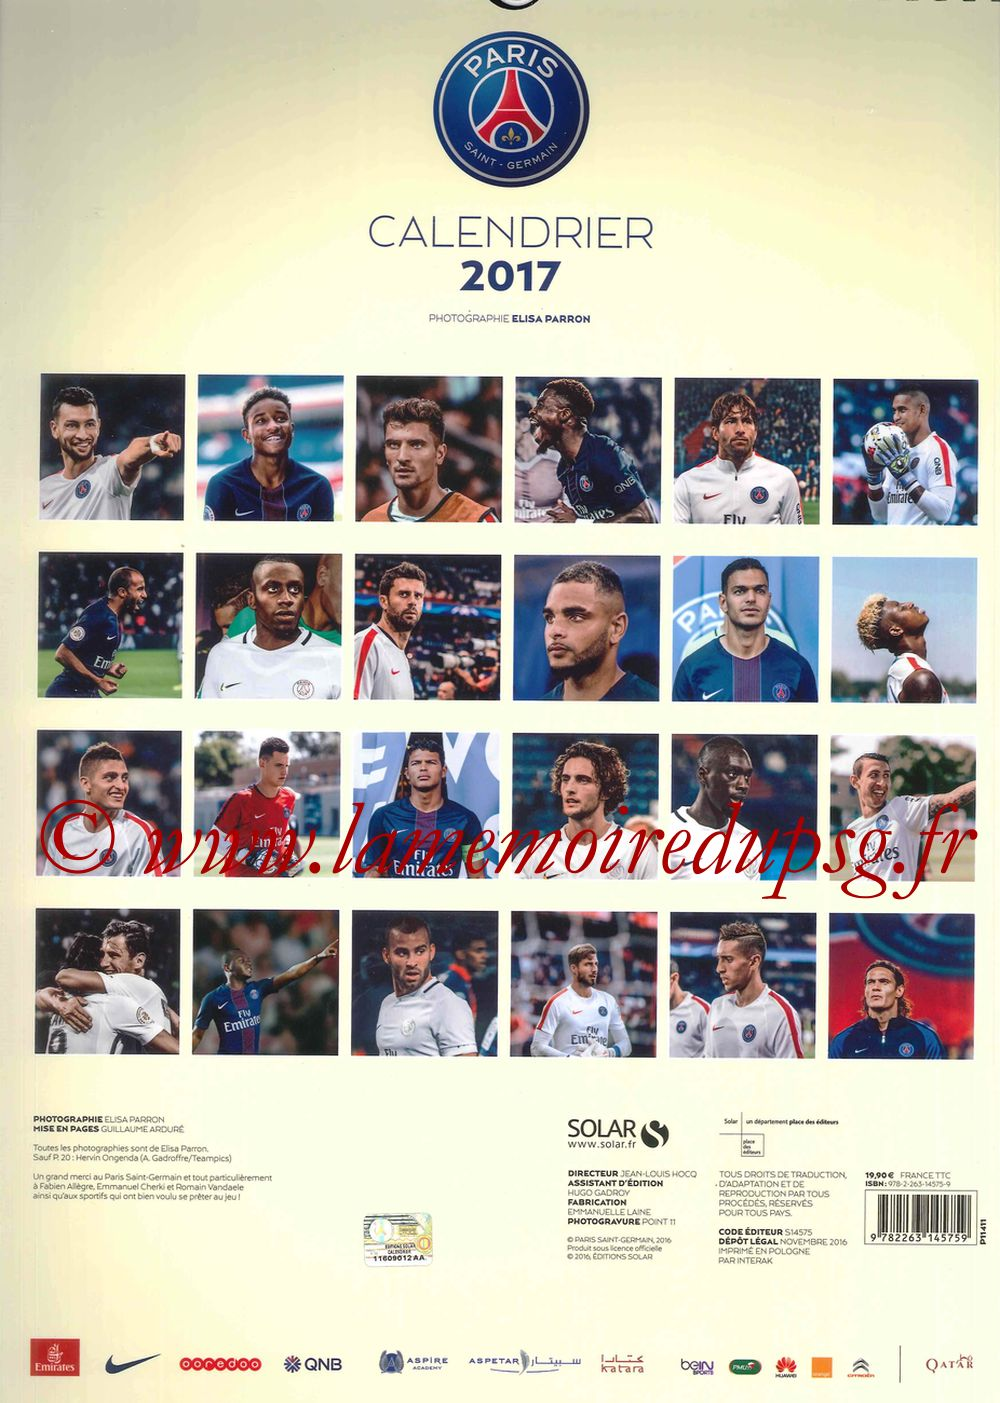 Calendrier PSG 2017 - Page 25 - Dos